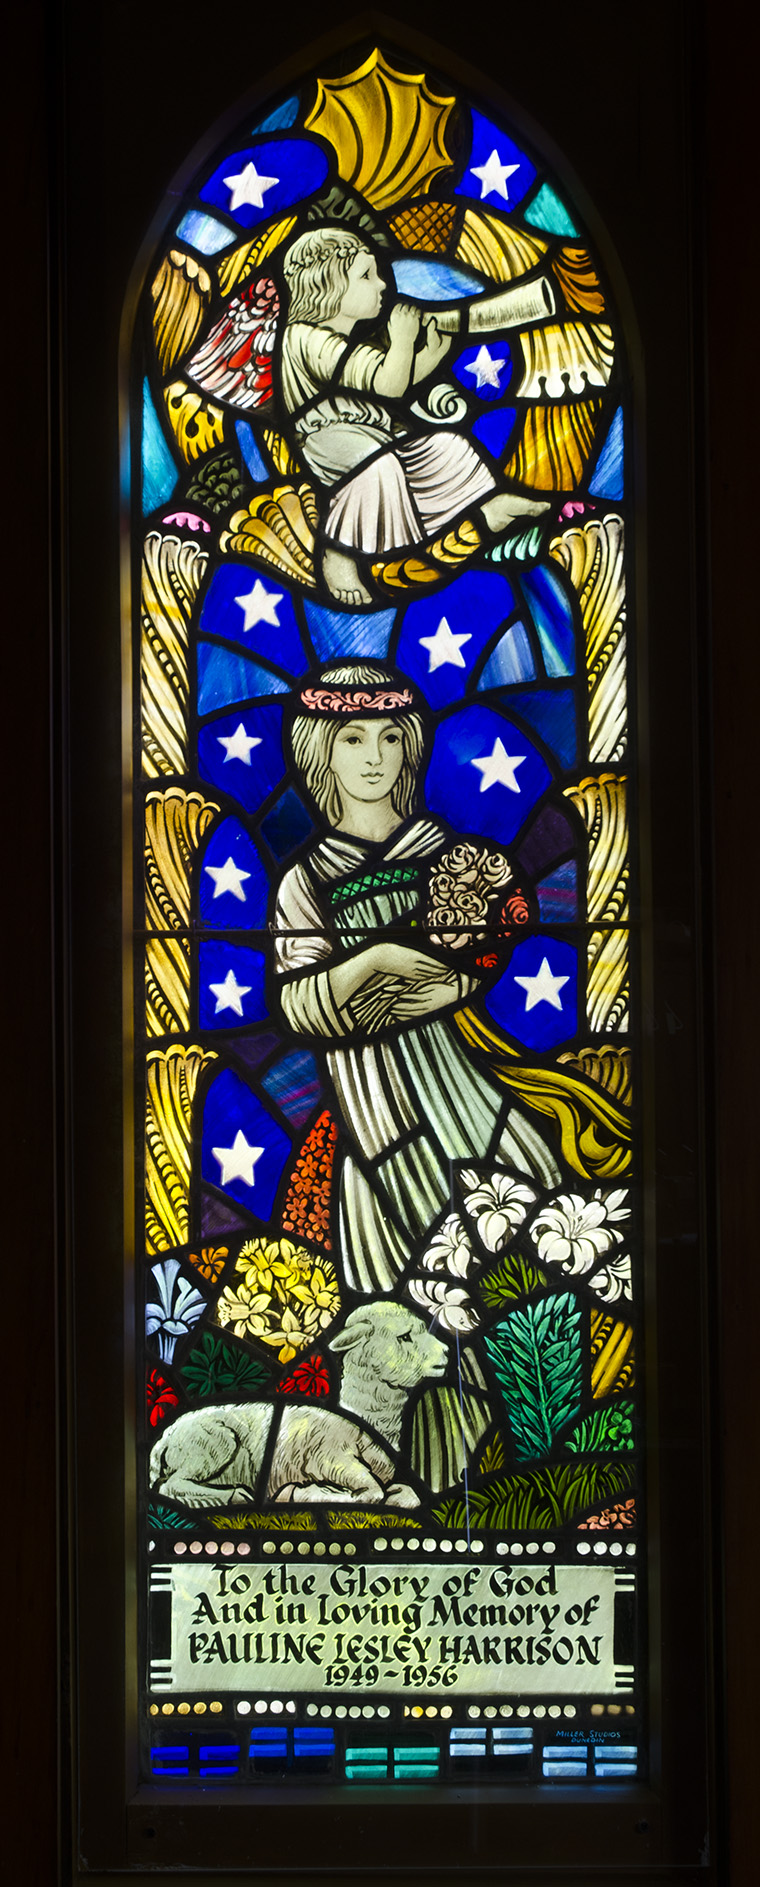 St John's Anglican Church Lyndhurst ST Wesport - 1 Ellis - 1 Bunton and one probably BSB - This window toPauline Harrison who died aged 10 - she was a sickly child from birth - Father was a pharmacist - she had some illness which caused early death -